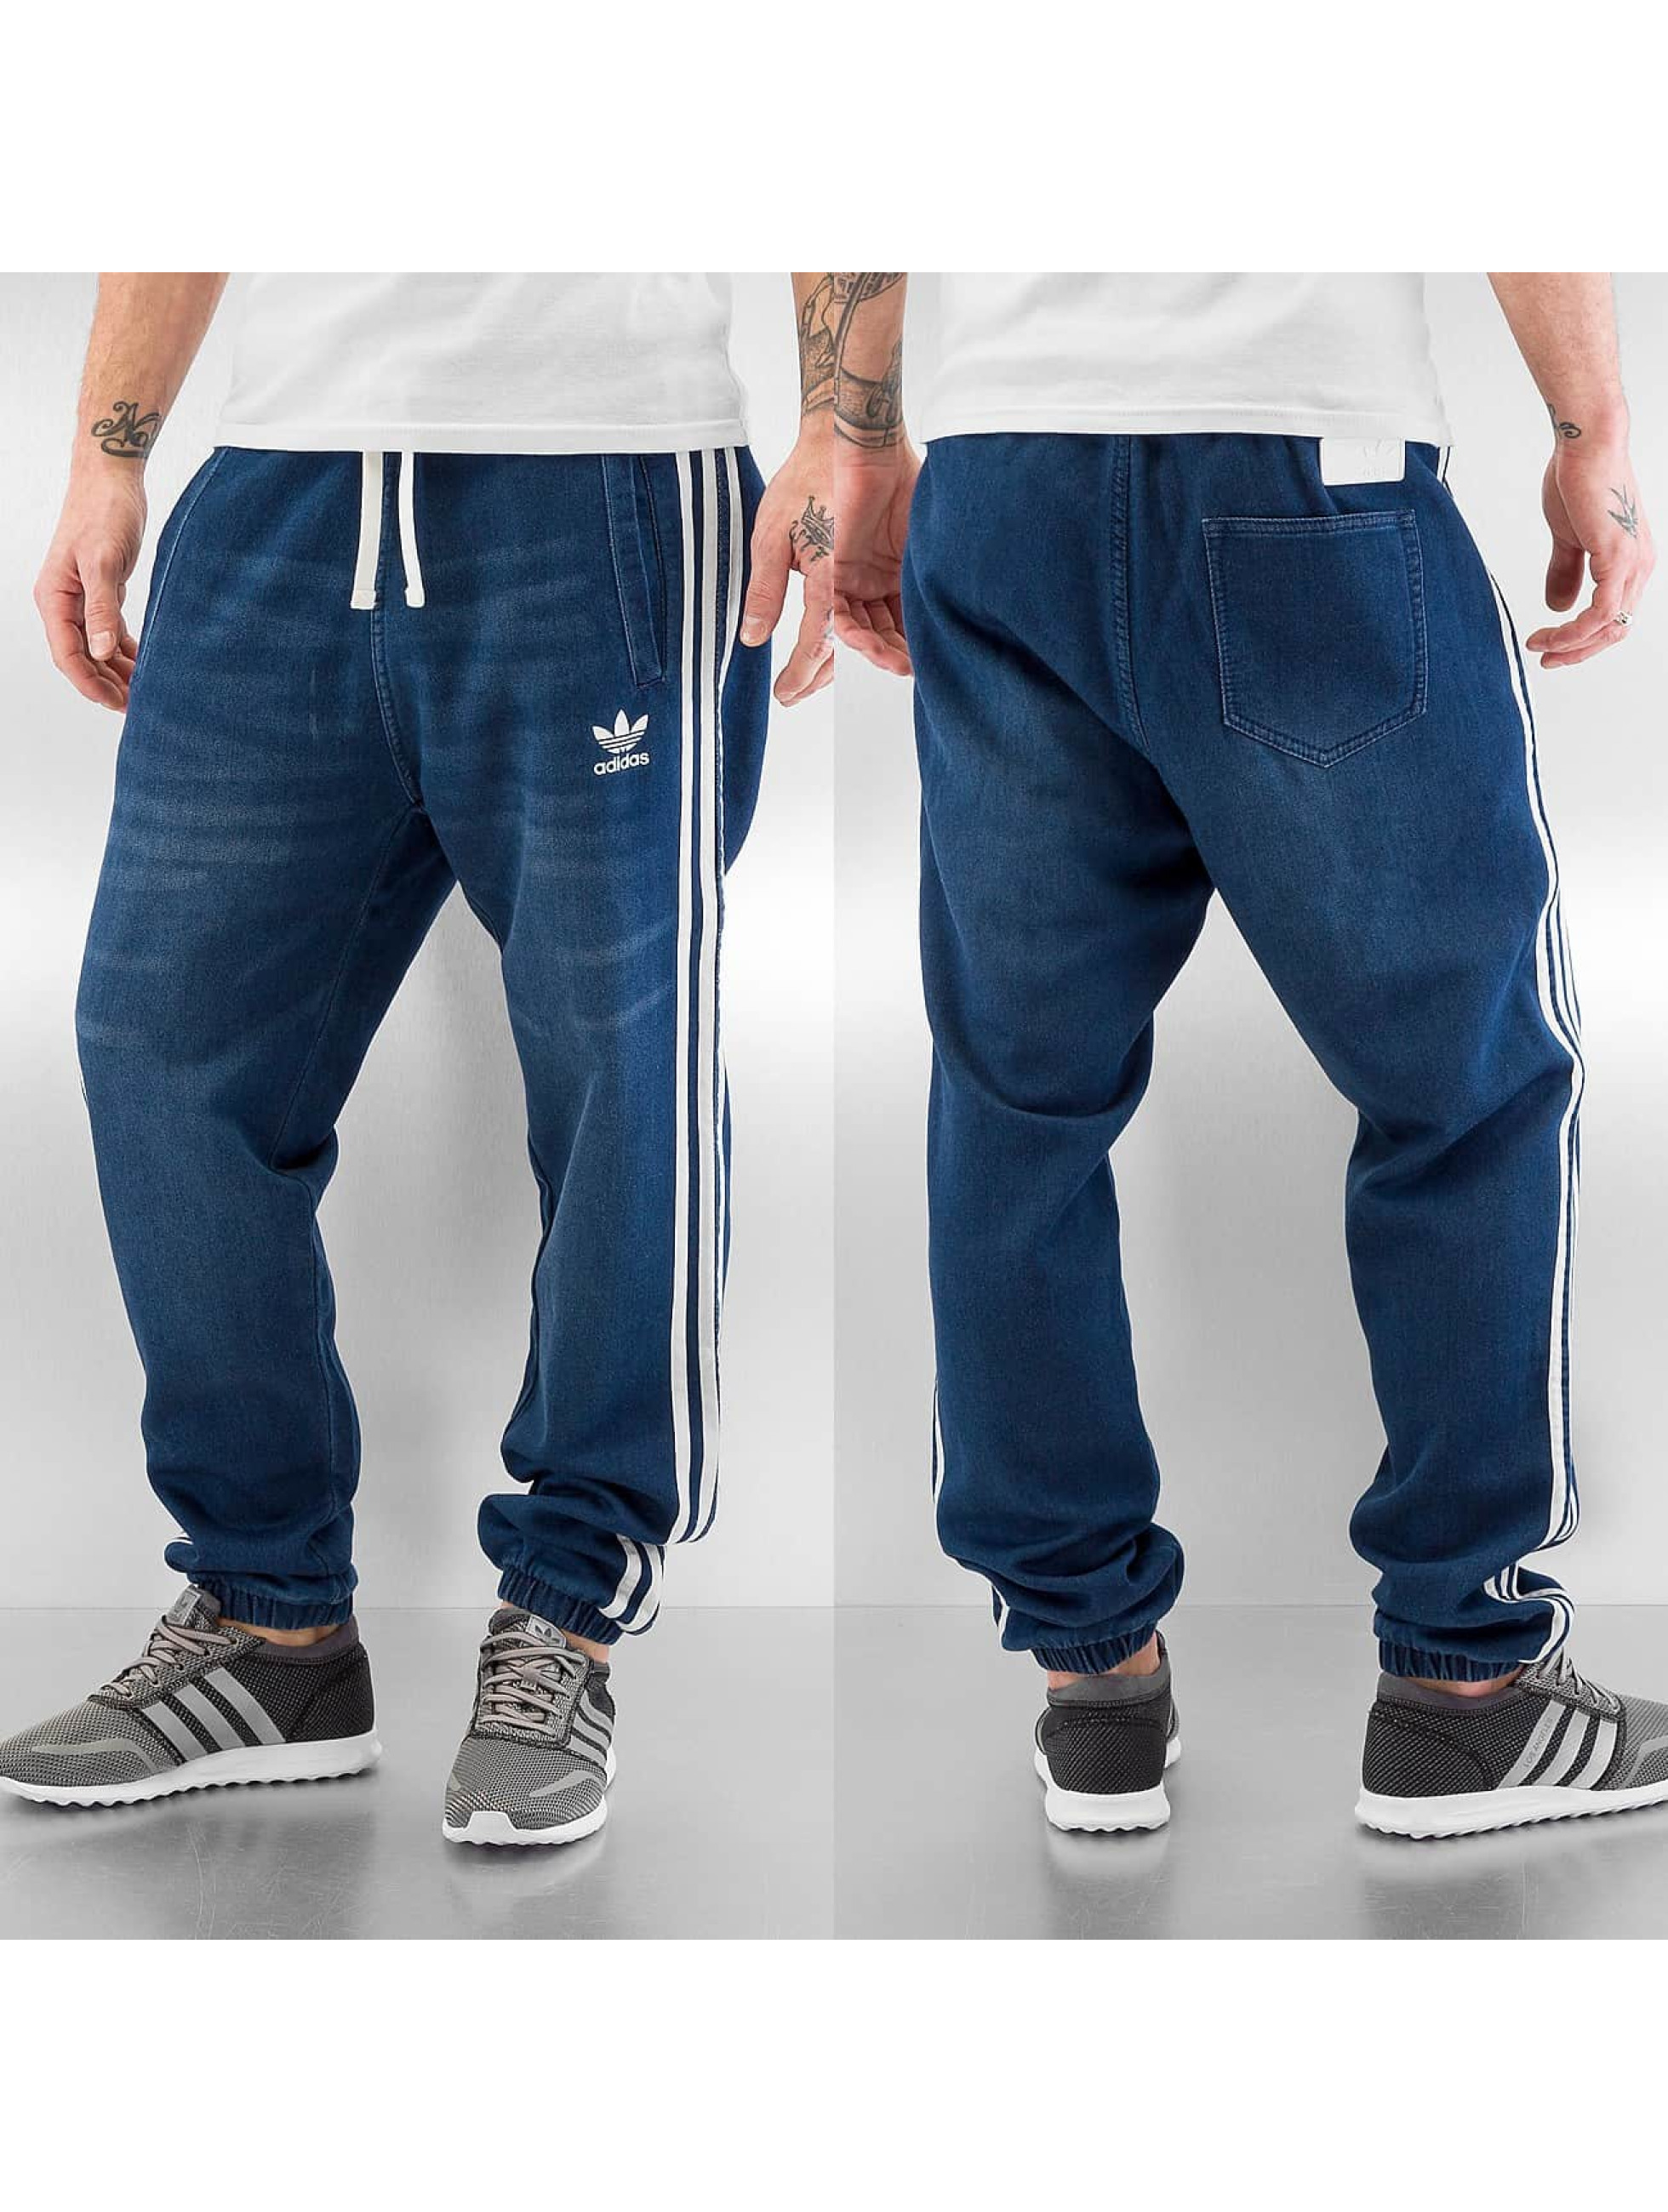 adidas herren jogginghose french terry denim slim ebay. Black Bedroom Furniture Sets. Home Design Ideas